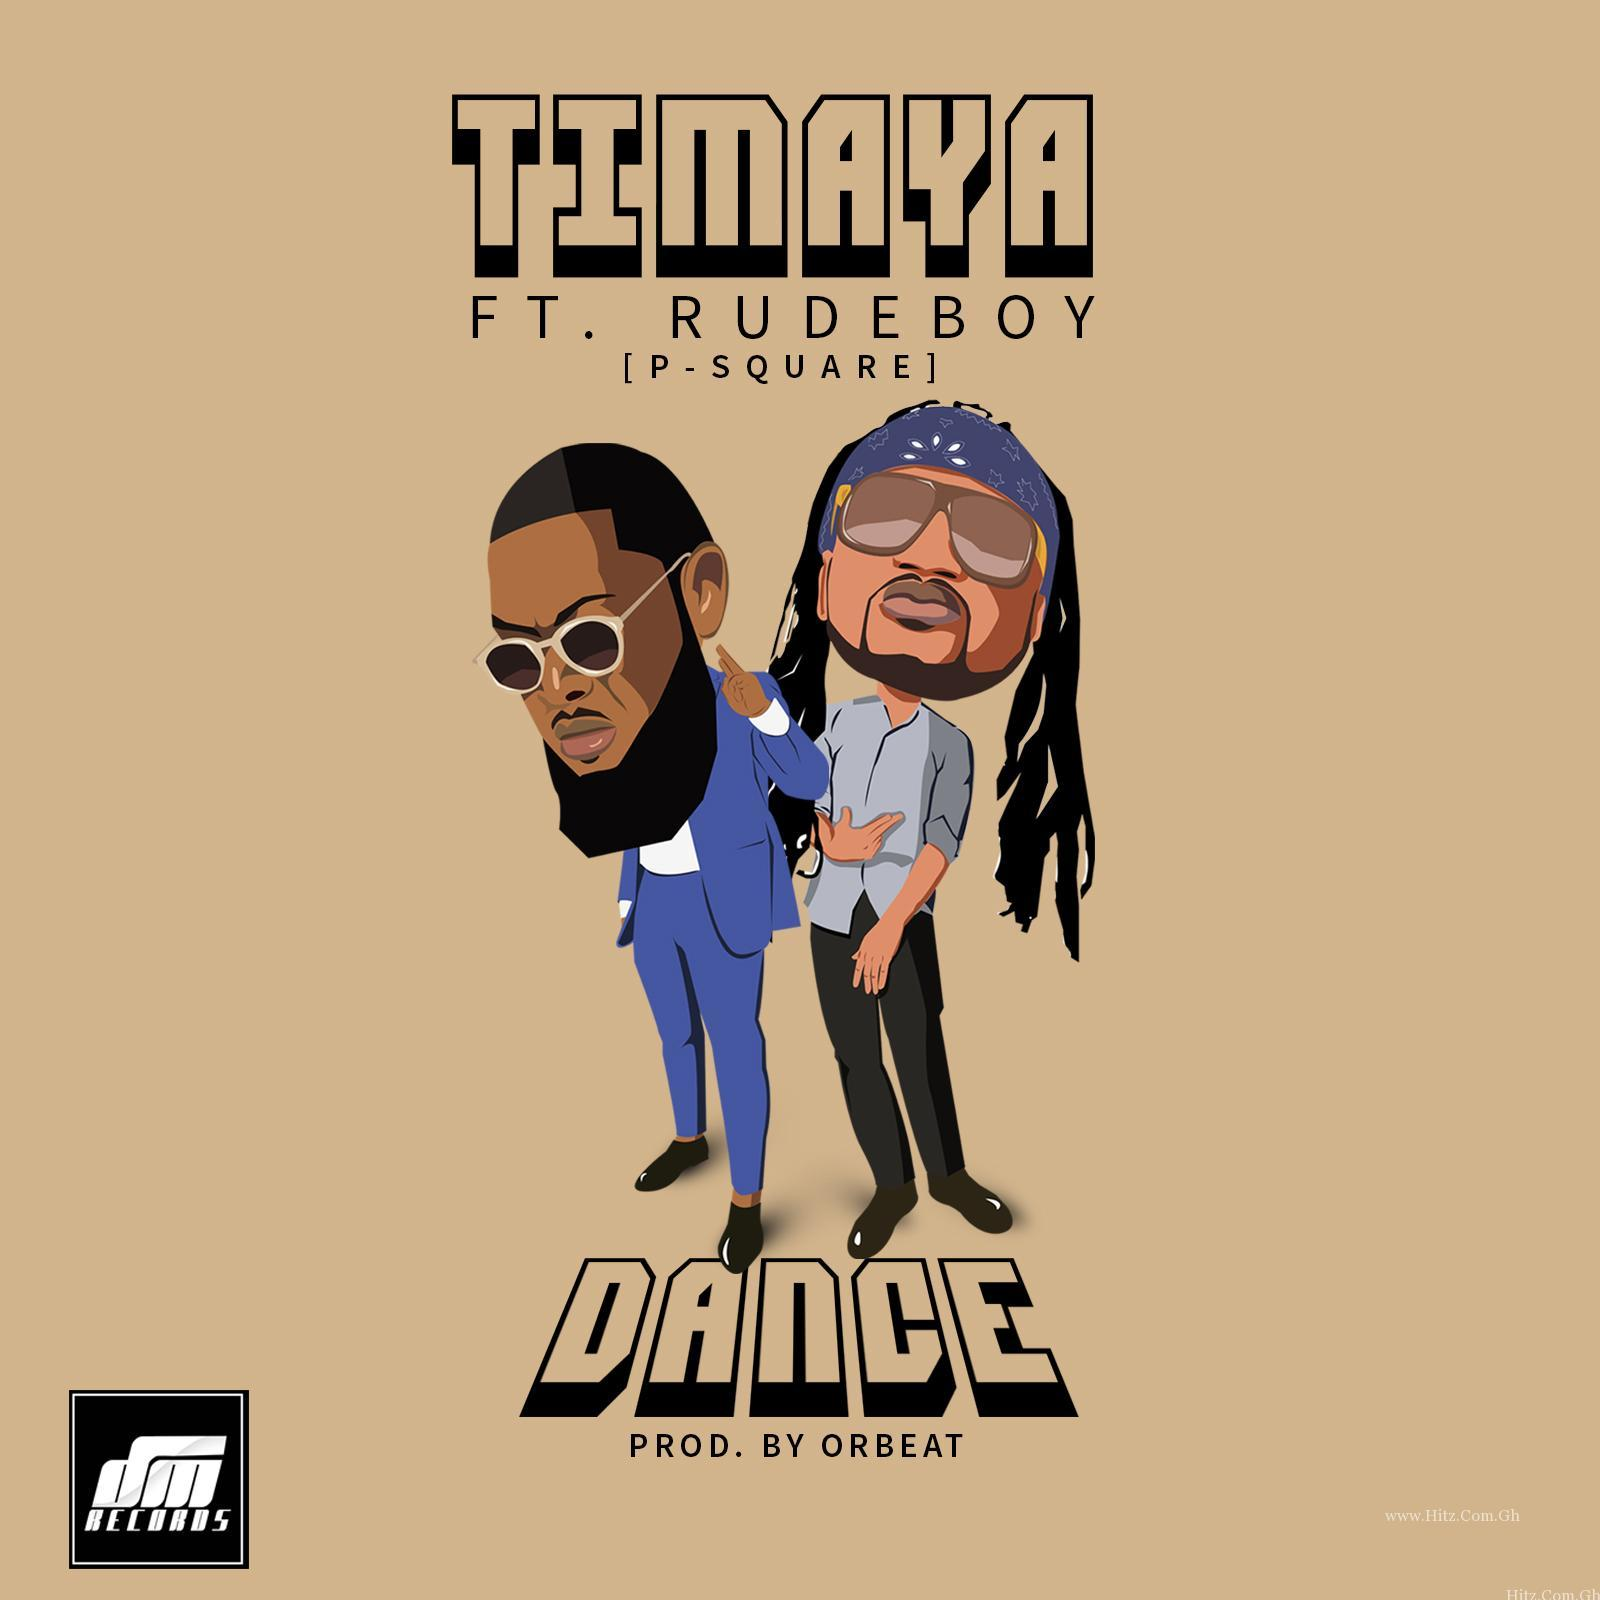 Timaya – Dance ft. Rudeboy (P-Square) (Prod By Orbeat)